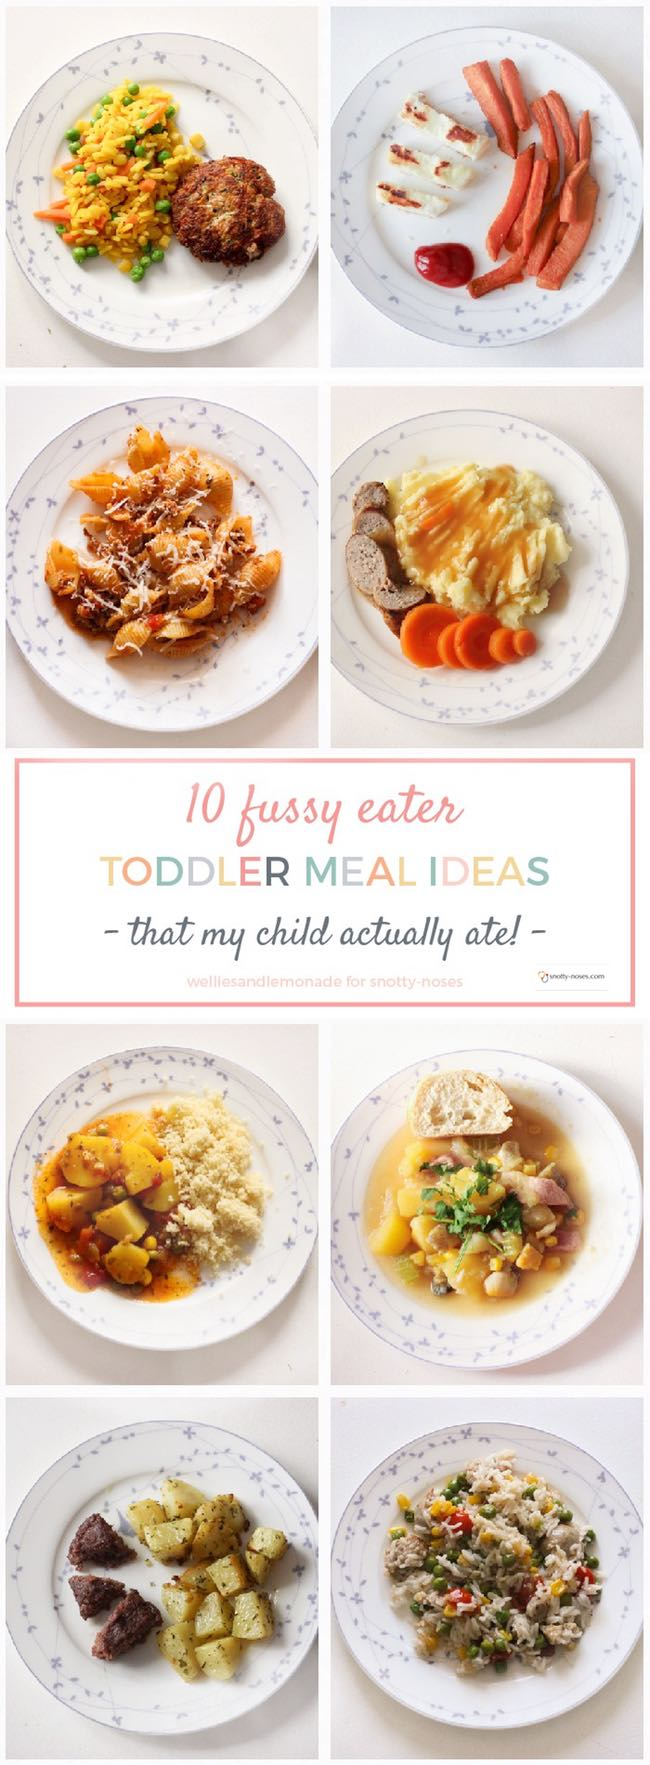 preschool lunch ideas for picky eaters picky toddler meal ideas 440